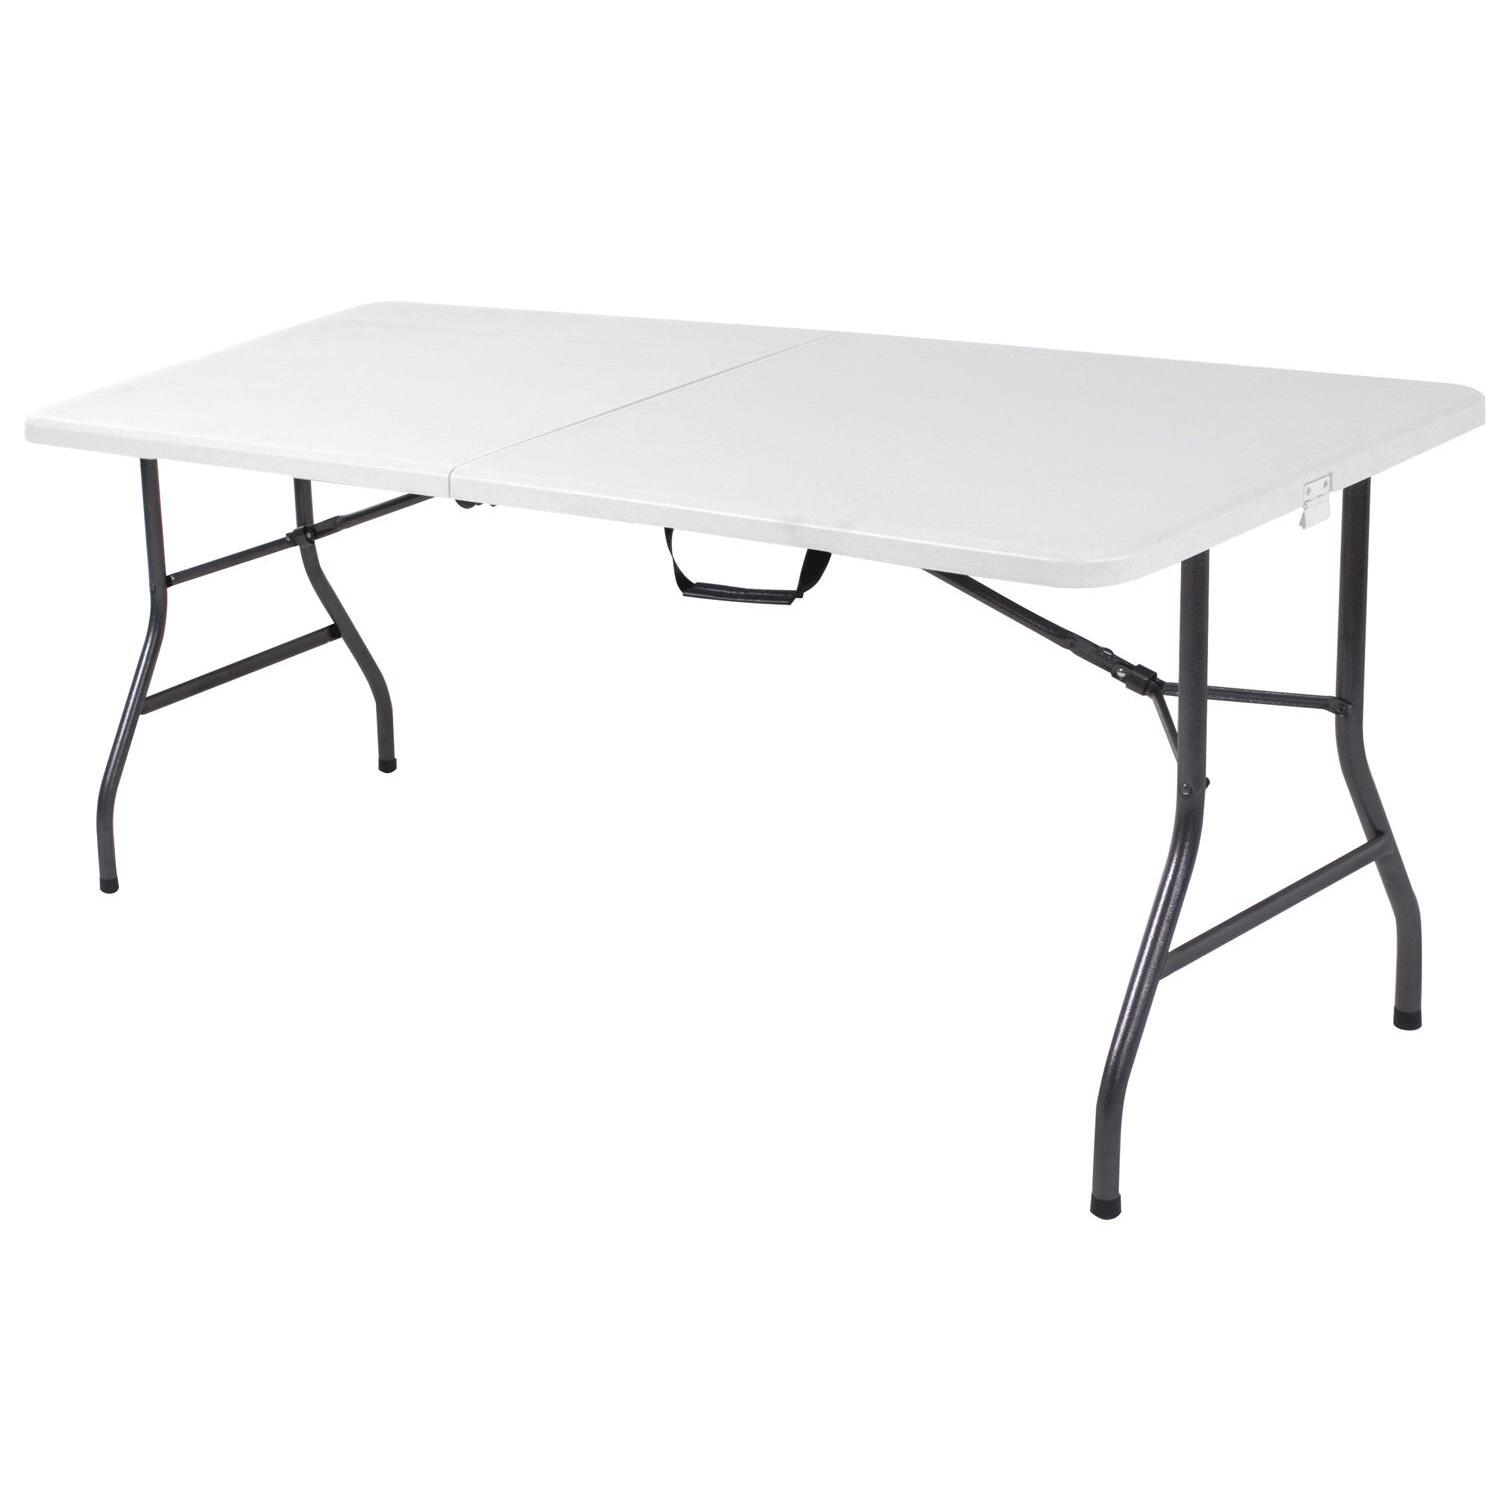 Cosco 6' Center Fold Table By Oj Commerce 14678wsp1  $10099. Bamboo Drawer Organizers. Student Desks Cheap. Old Chest Of Drawers. Silver Coffee Table Set. Desk Lamp With Organizer. Adjustable Sitting Standing Desk. Milking Table For Sale. Saddle Desk Chair